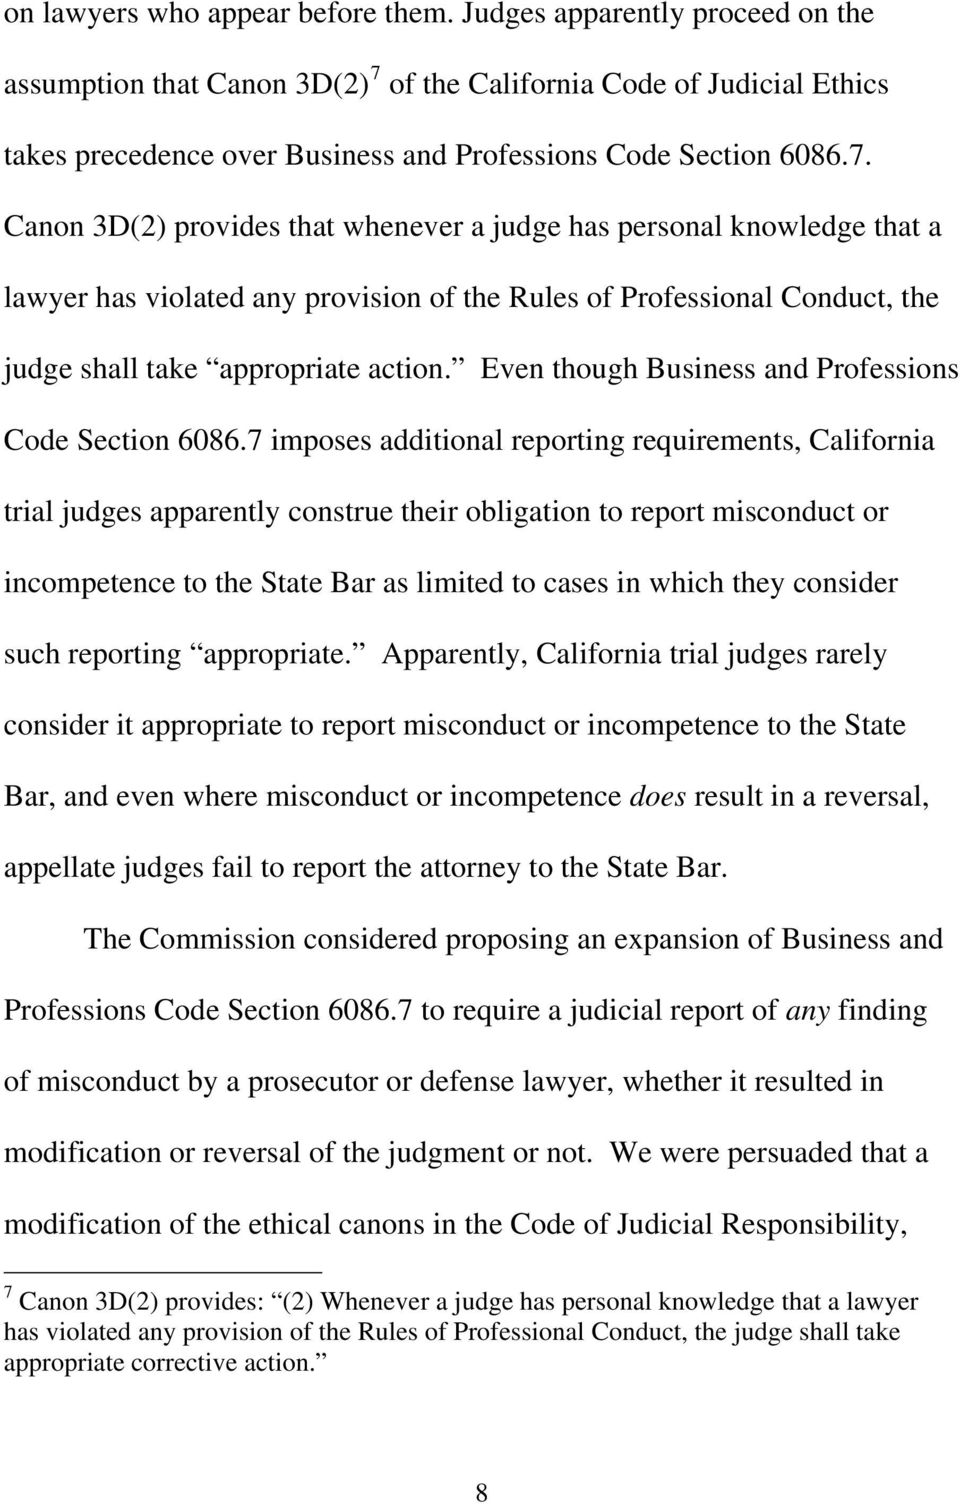 of the California Code of Judicial Ethics takes precedence over Business and Professions Code Section 6086.7.